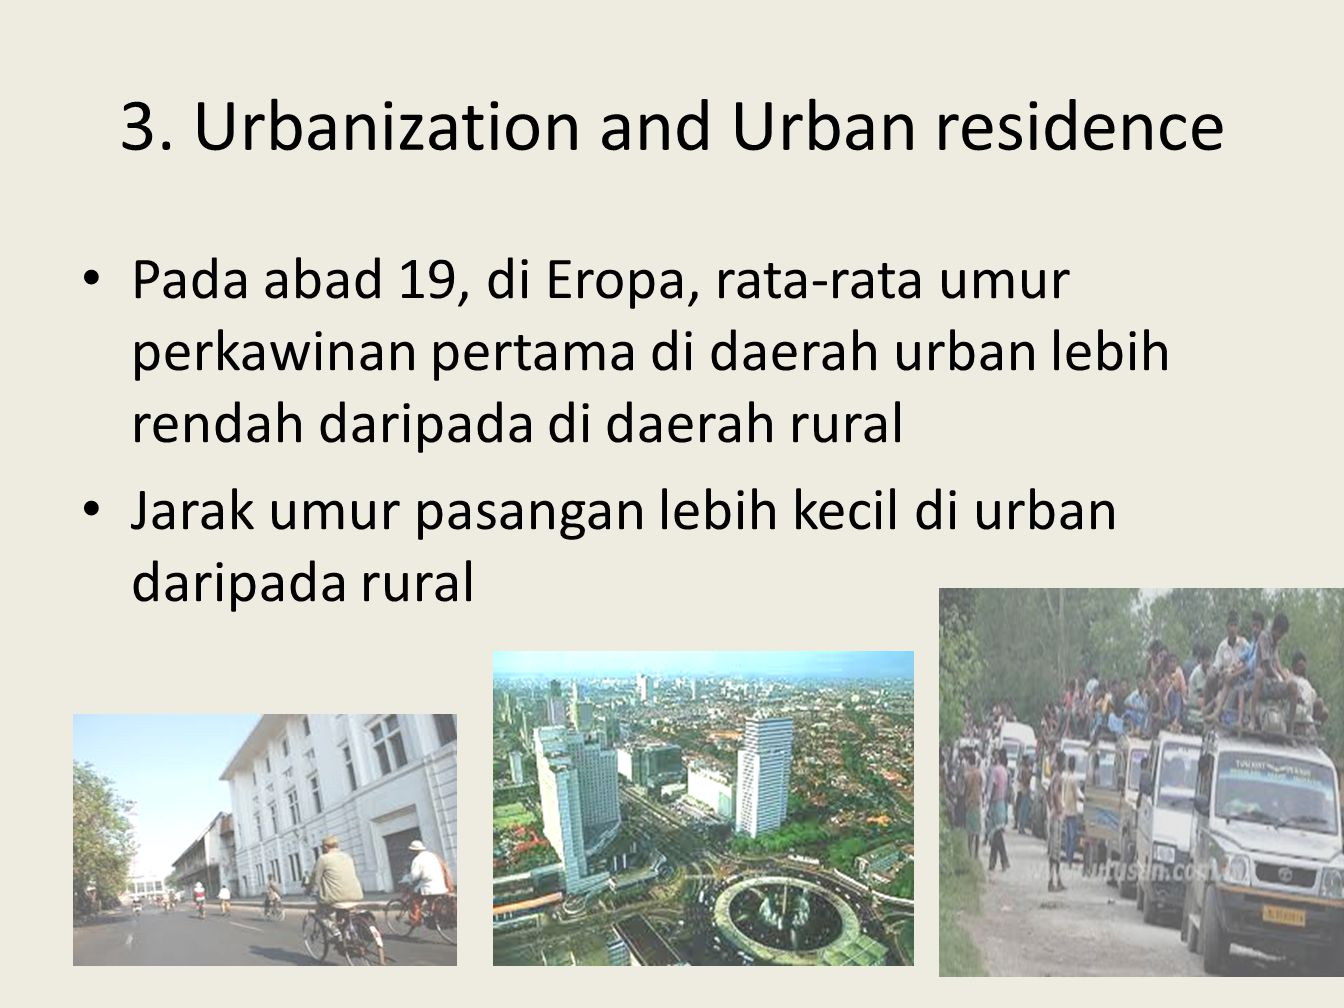 3. Urbanization and Urban residence